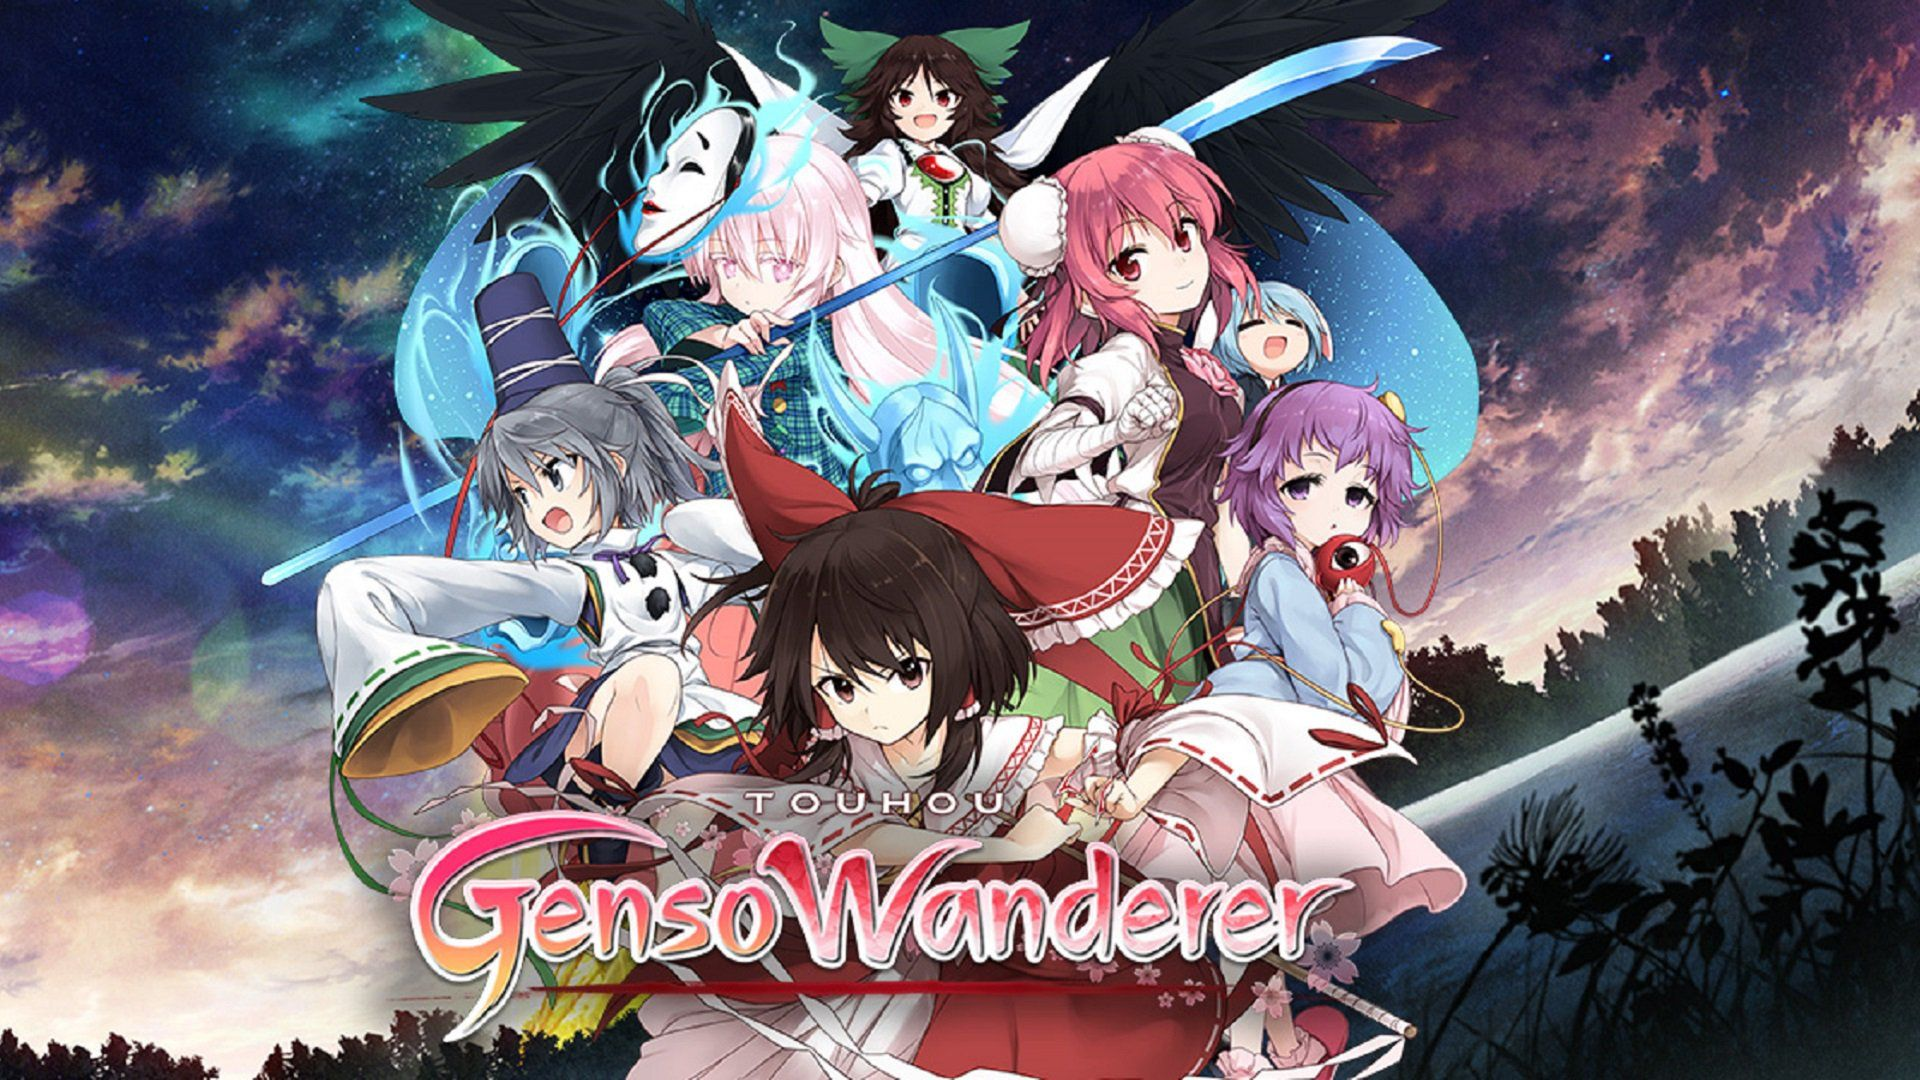 Touhou Genso Wanderer Review Dungeon Diving in Dim